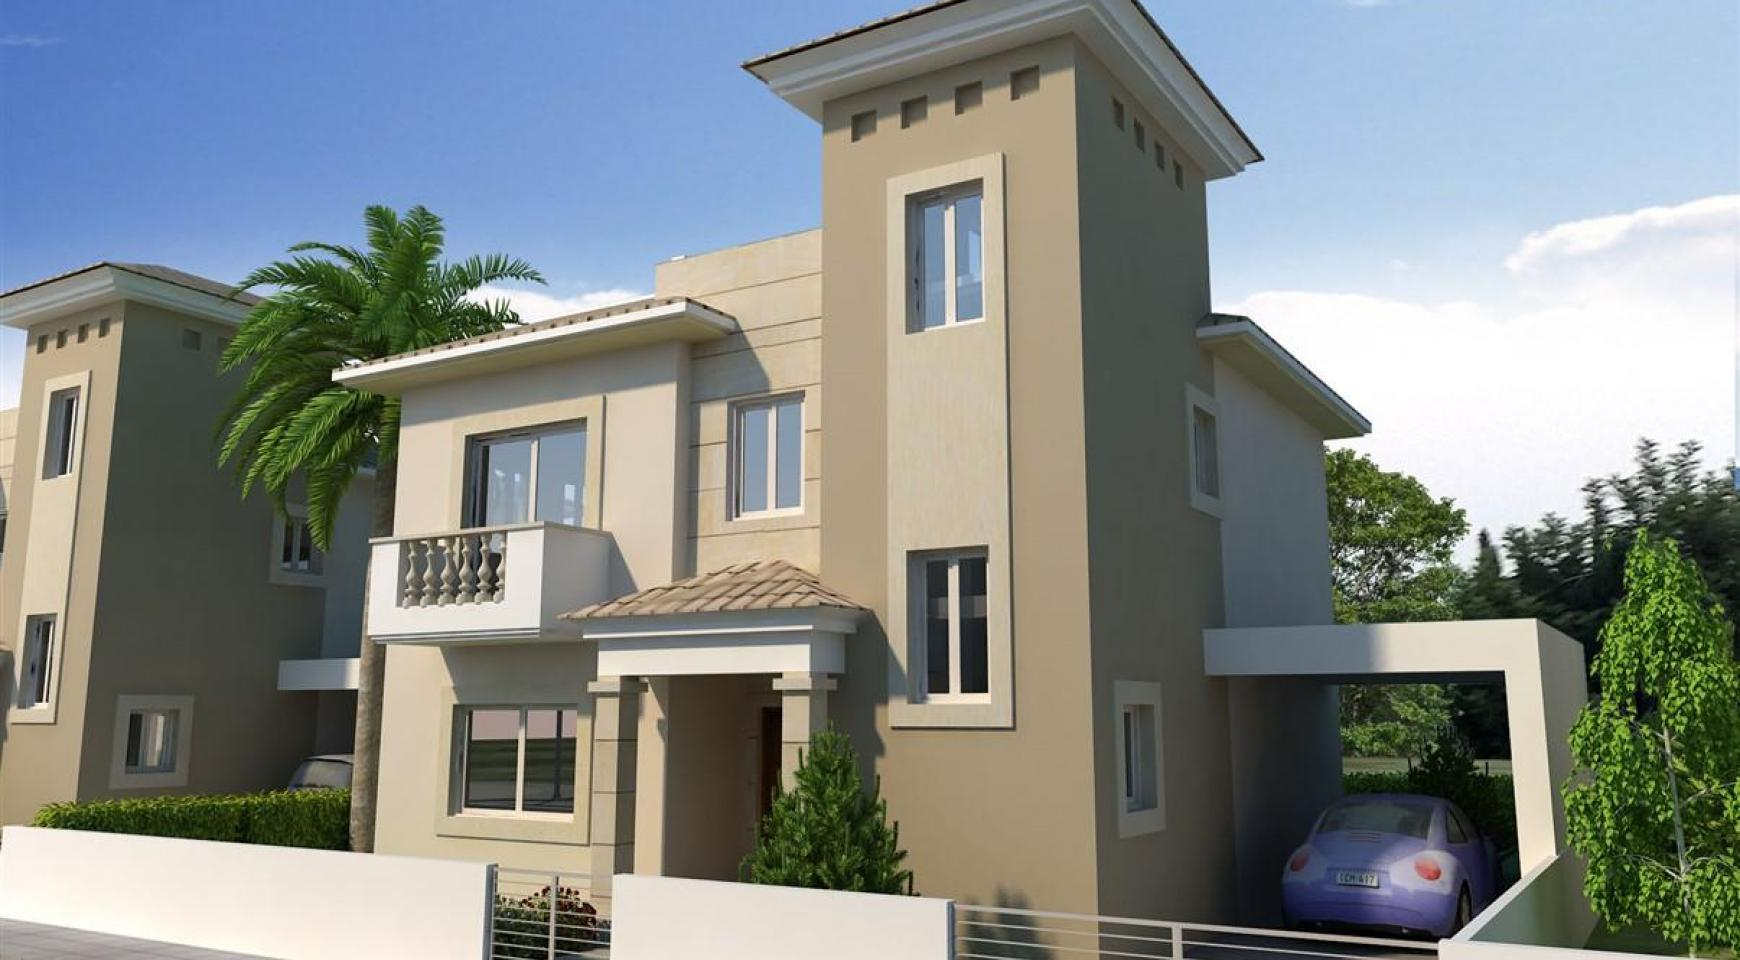 3 Bedroom Villa in a New Project - 15